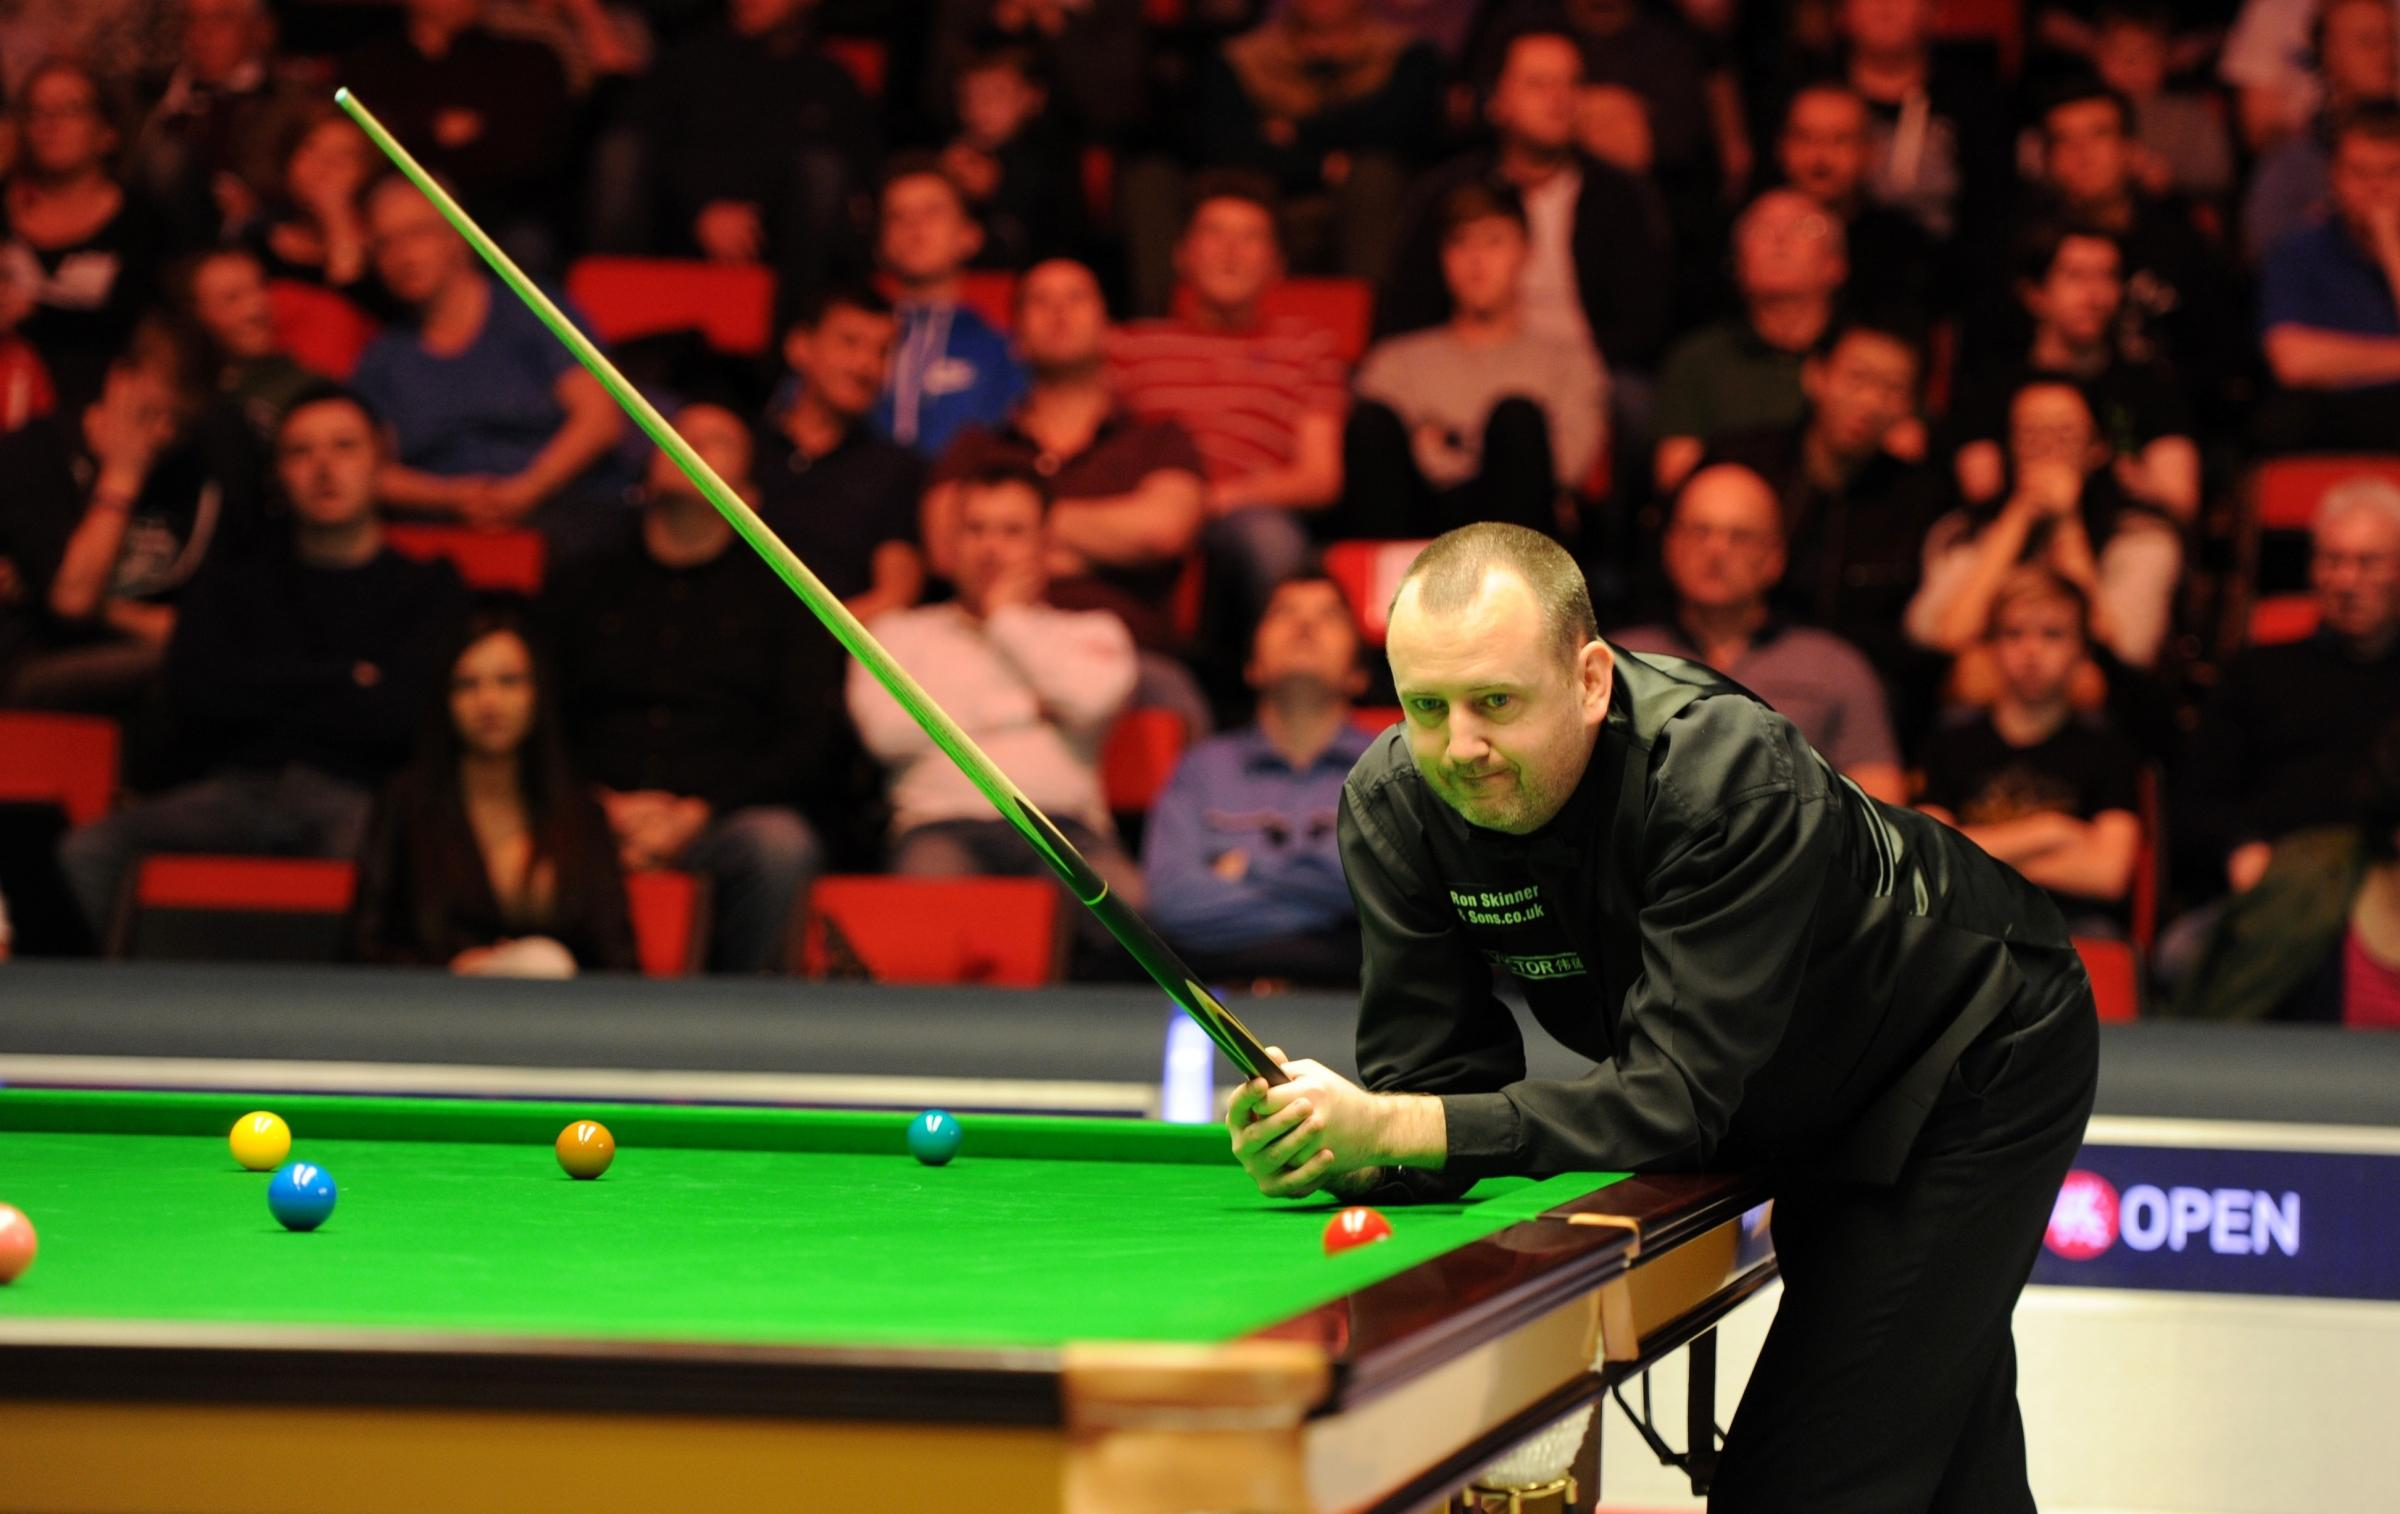 BLOW: Mark Williams will miss out on the Crucible after defeat in qualifying